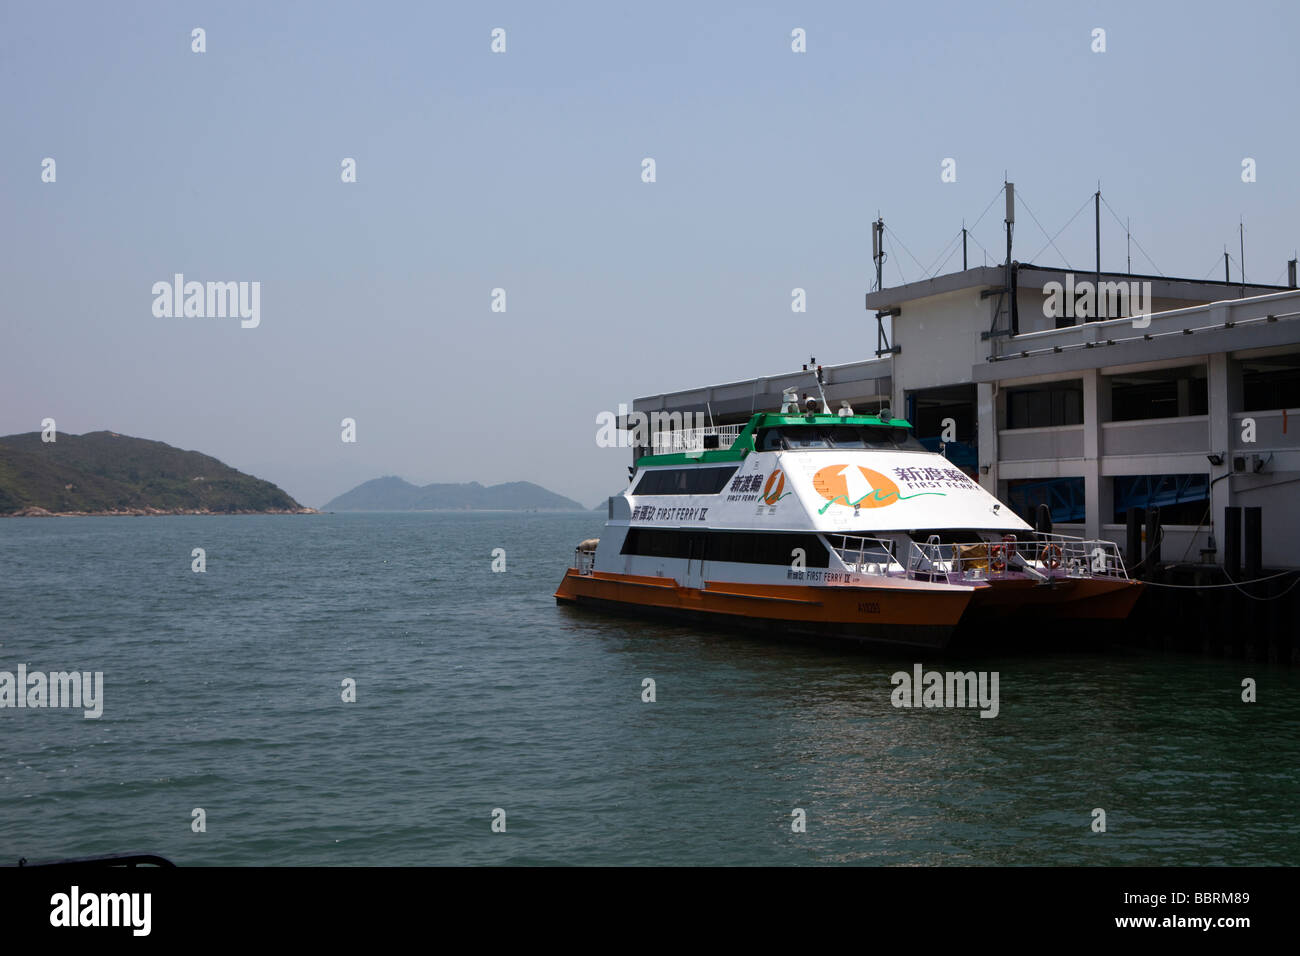 A ferry is seen at the pier on Lantau Island, Hong Kong - Stock Image